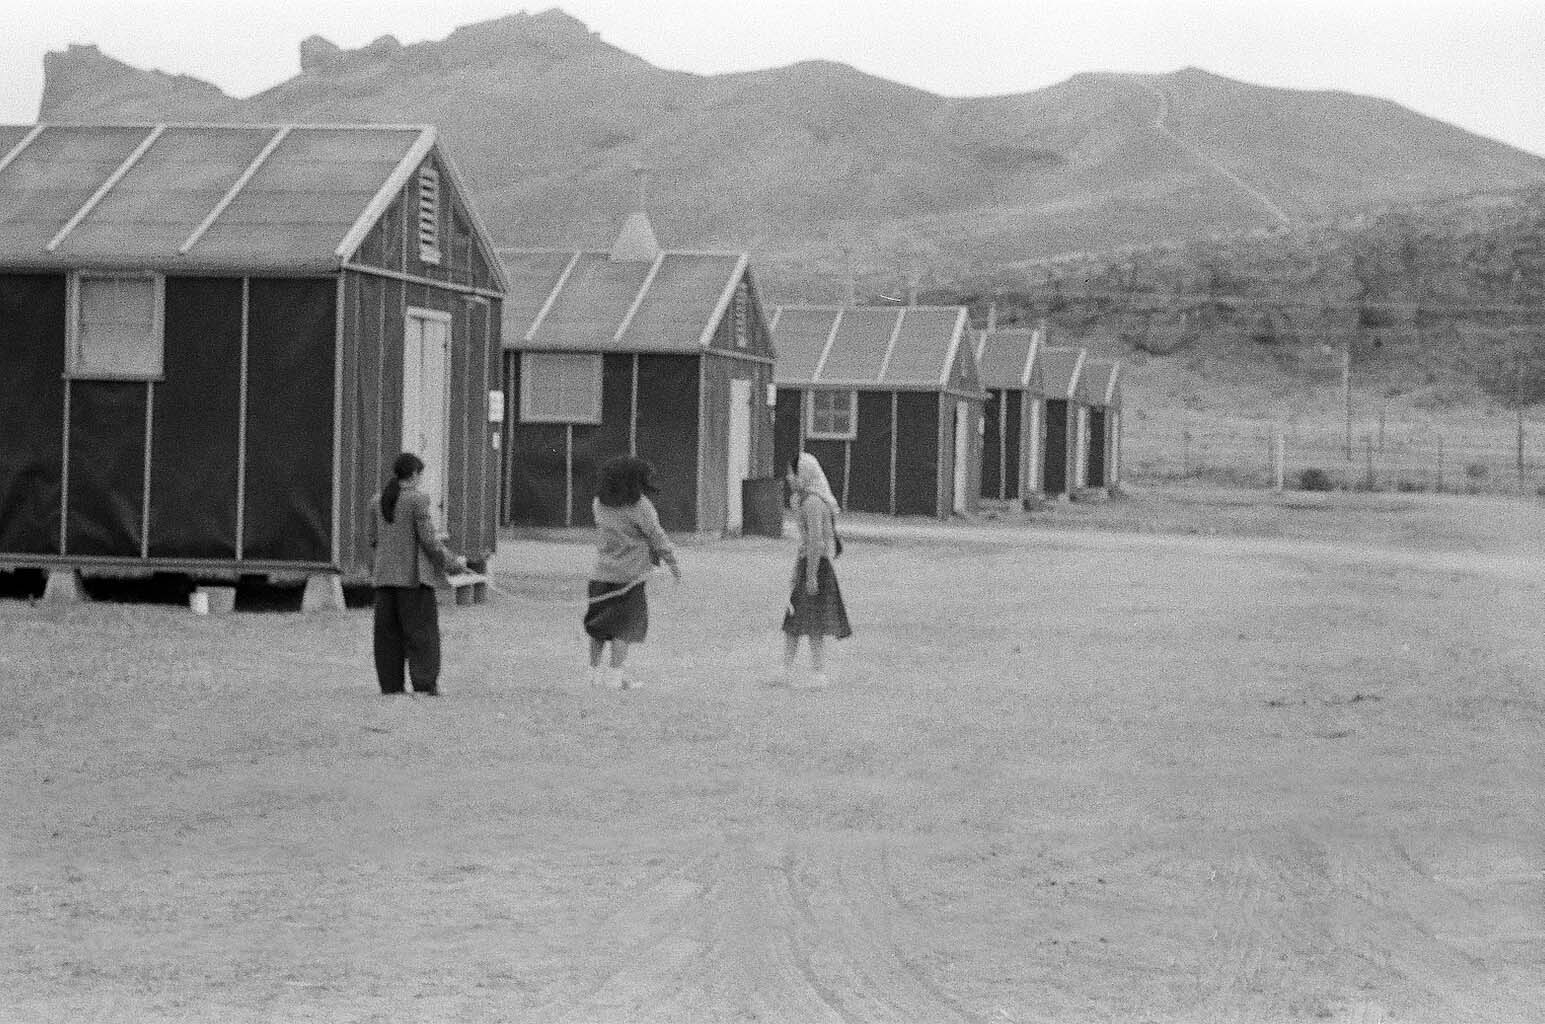 farewell to manzanar essay Beginning with a foreword and a time line, farewell to manzanar contains an autobiographical memoir of jeanne wakatsuki houston's wartime incarceration at manza.